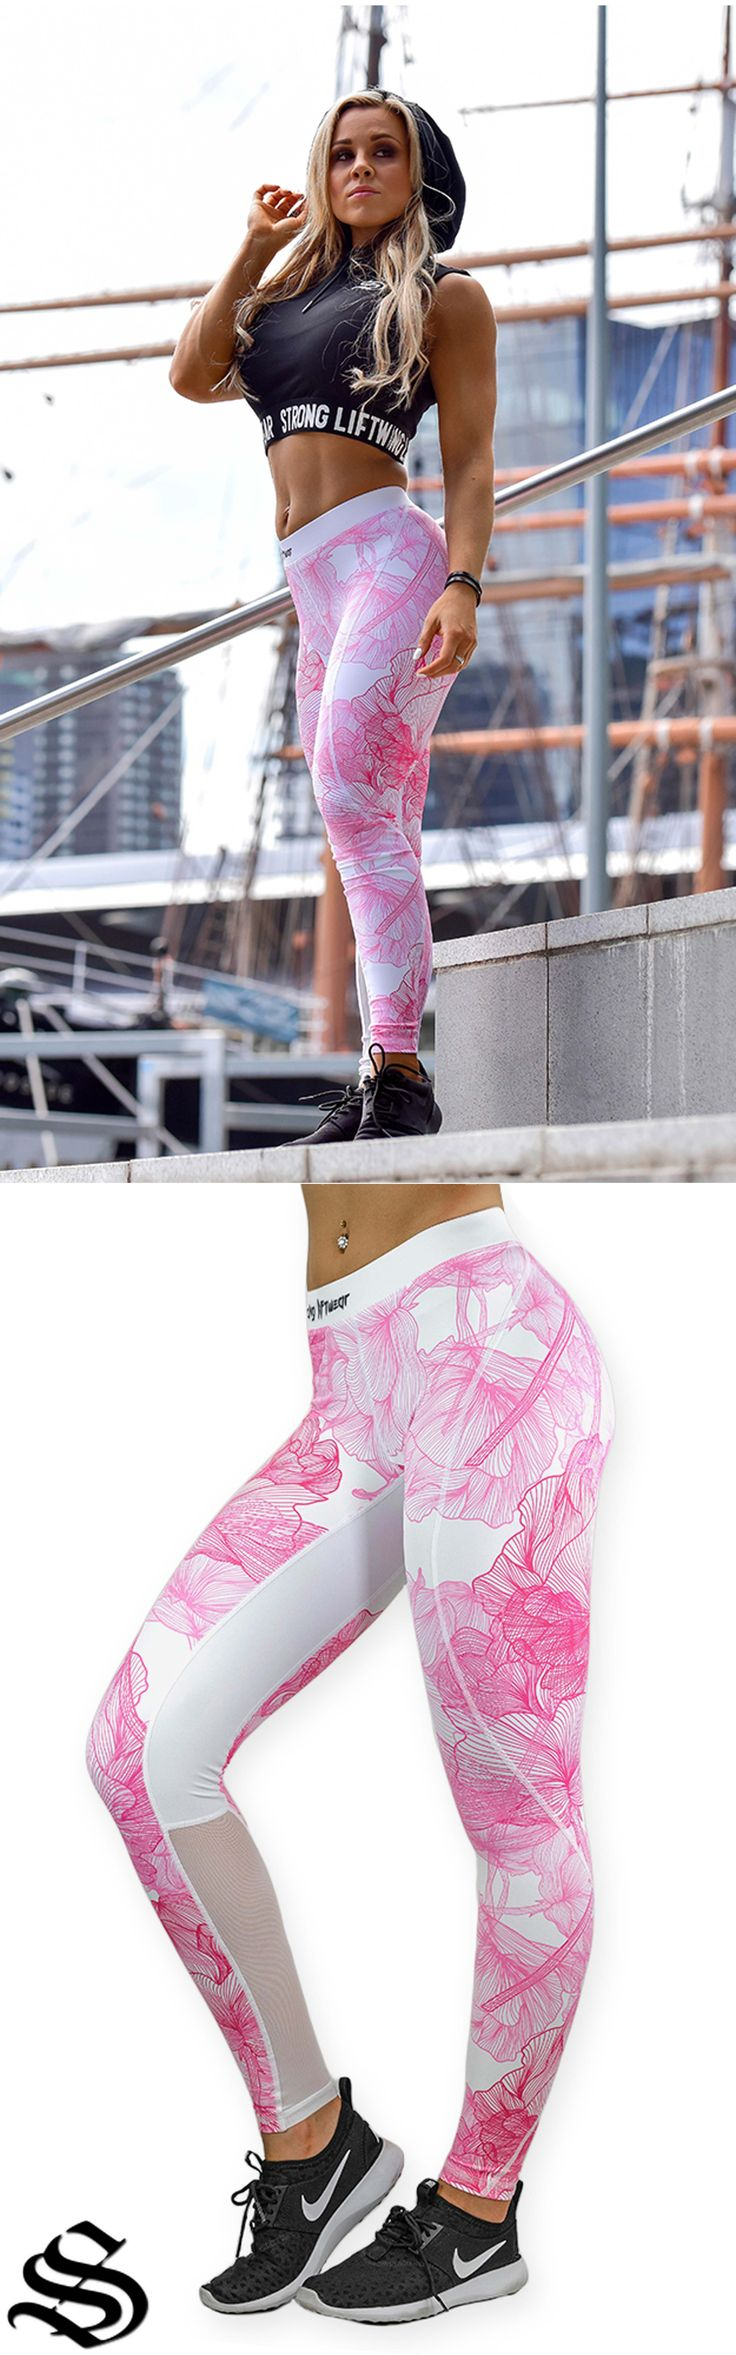 Compression Pant- Flower- Pink │gym wear │fitness wear │fitness clothing │fitness │outfits │workout dress │gym outfits │workout outfits │singlets │pants #gymwear #fitnesswear #fitnessclothing #fitness #outfits #workoutdress #gymoutfits #workoutoutfits #singlets #pants